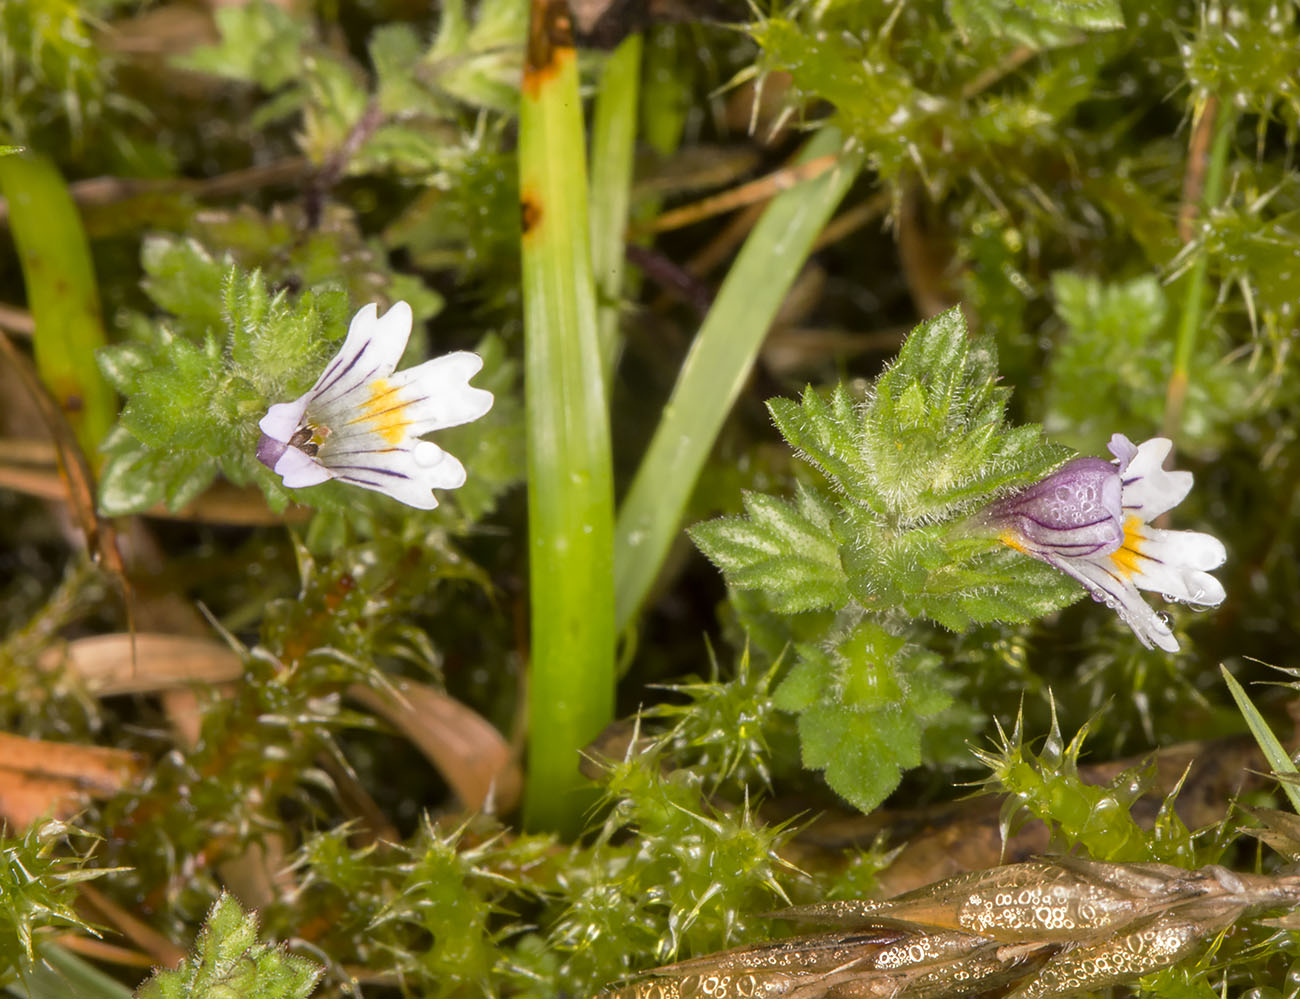 Eyebright, Euphrasia officinalis ssp. anglica.  Knole Park, 15 August 2014.